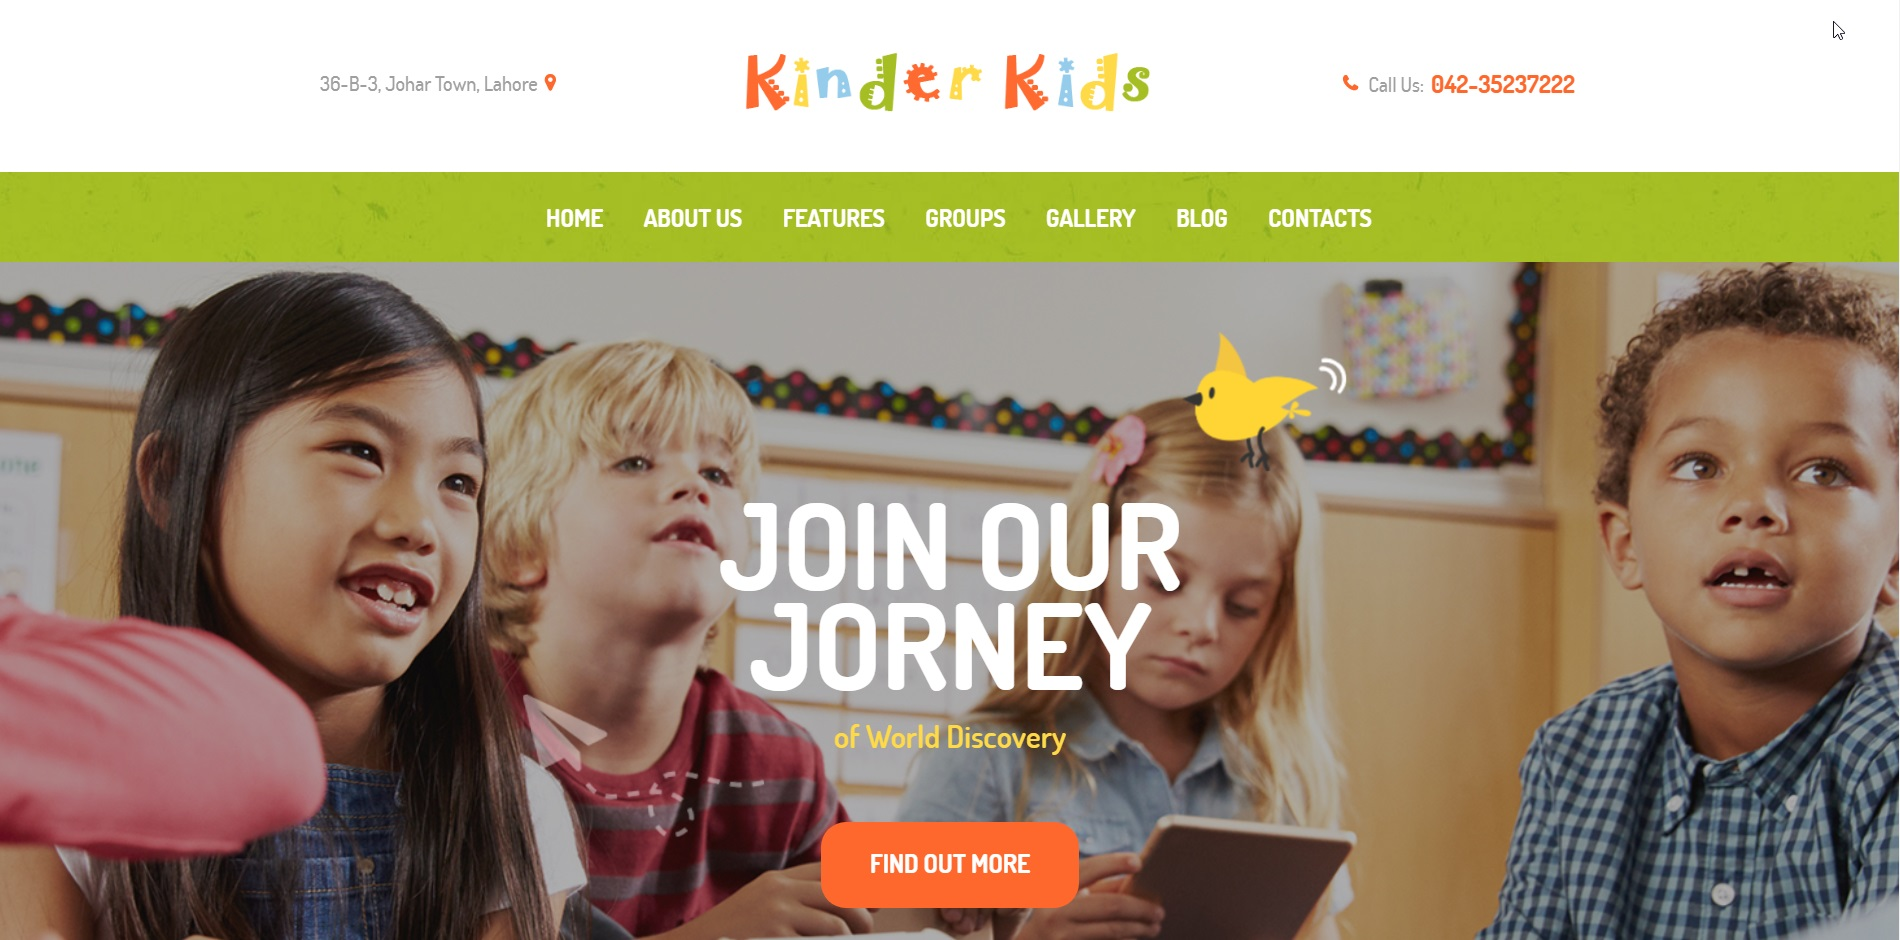 Kinder Kids Daycare and Preschool